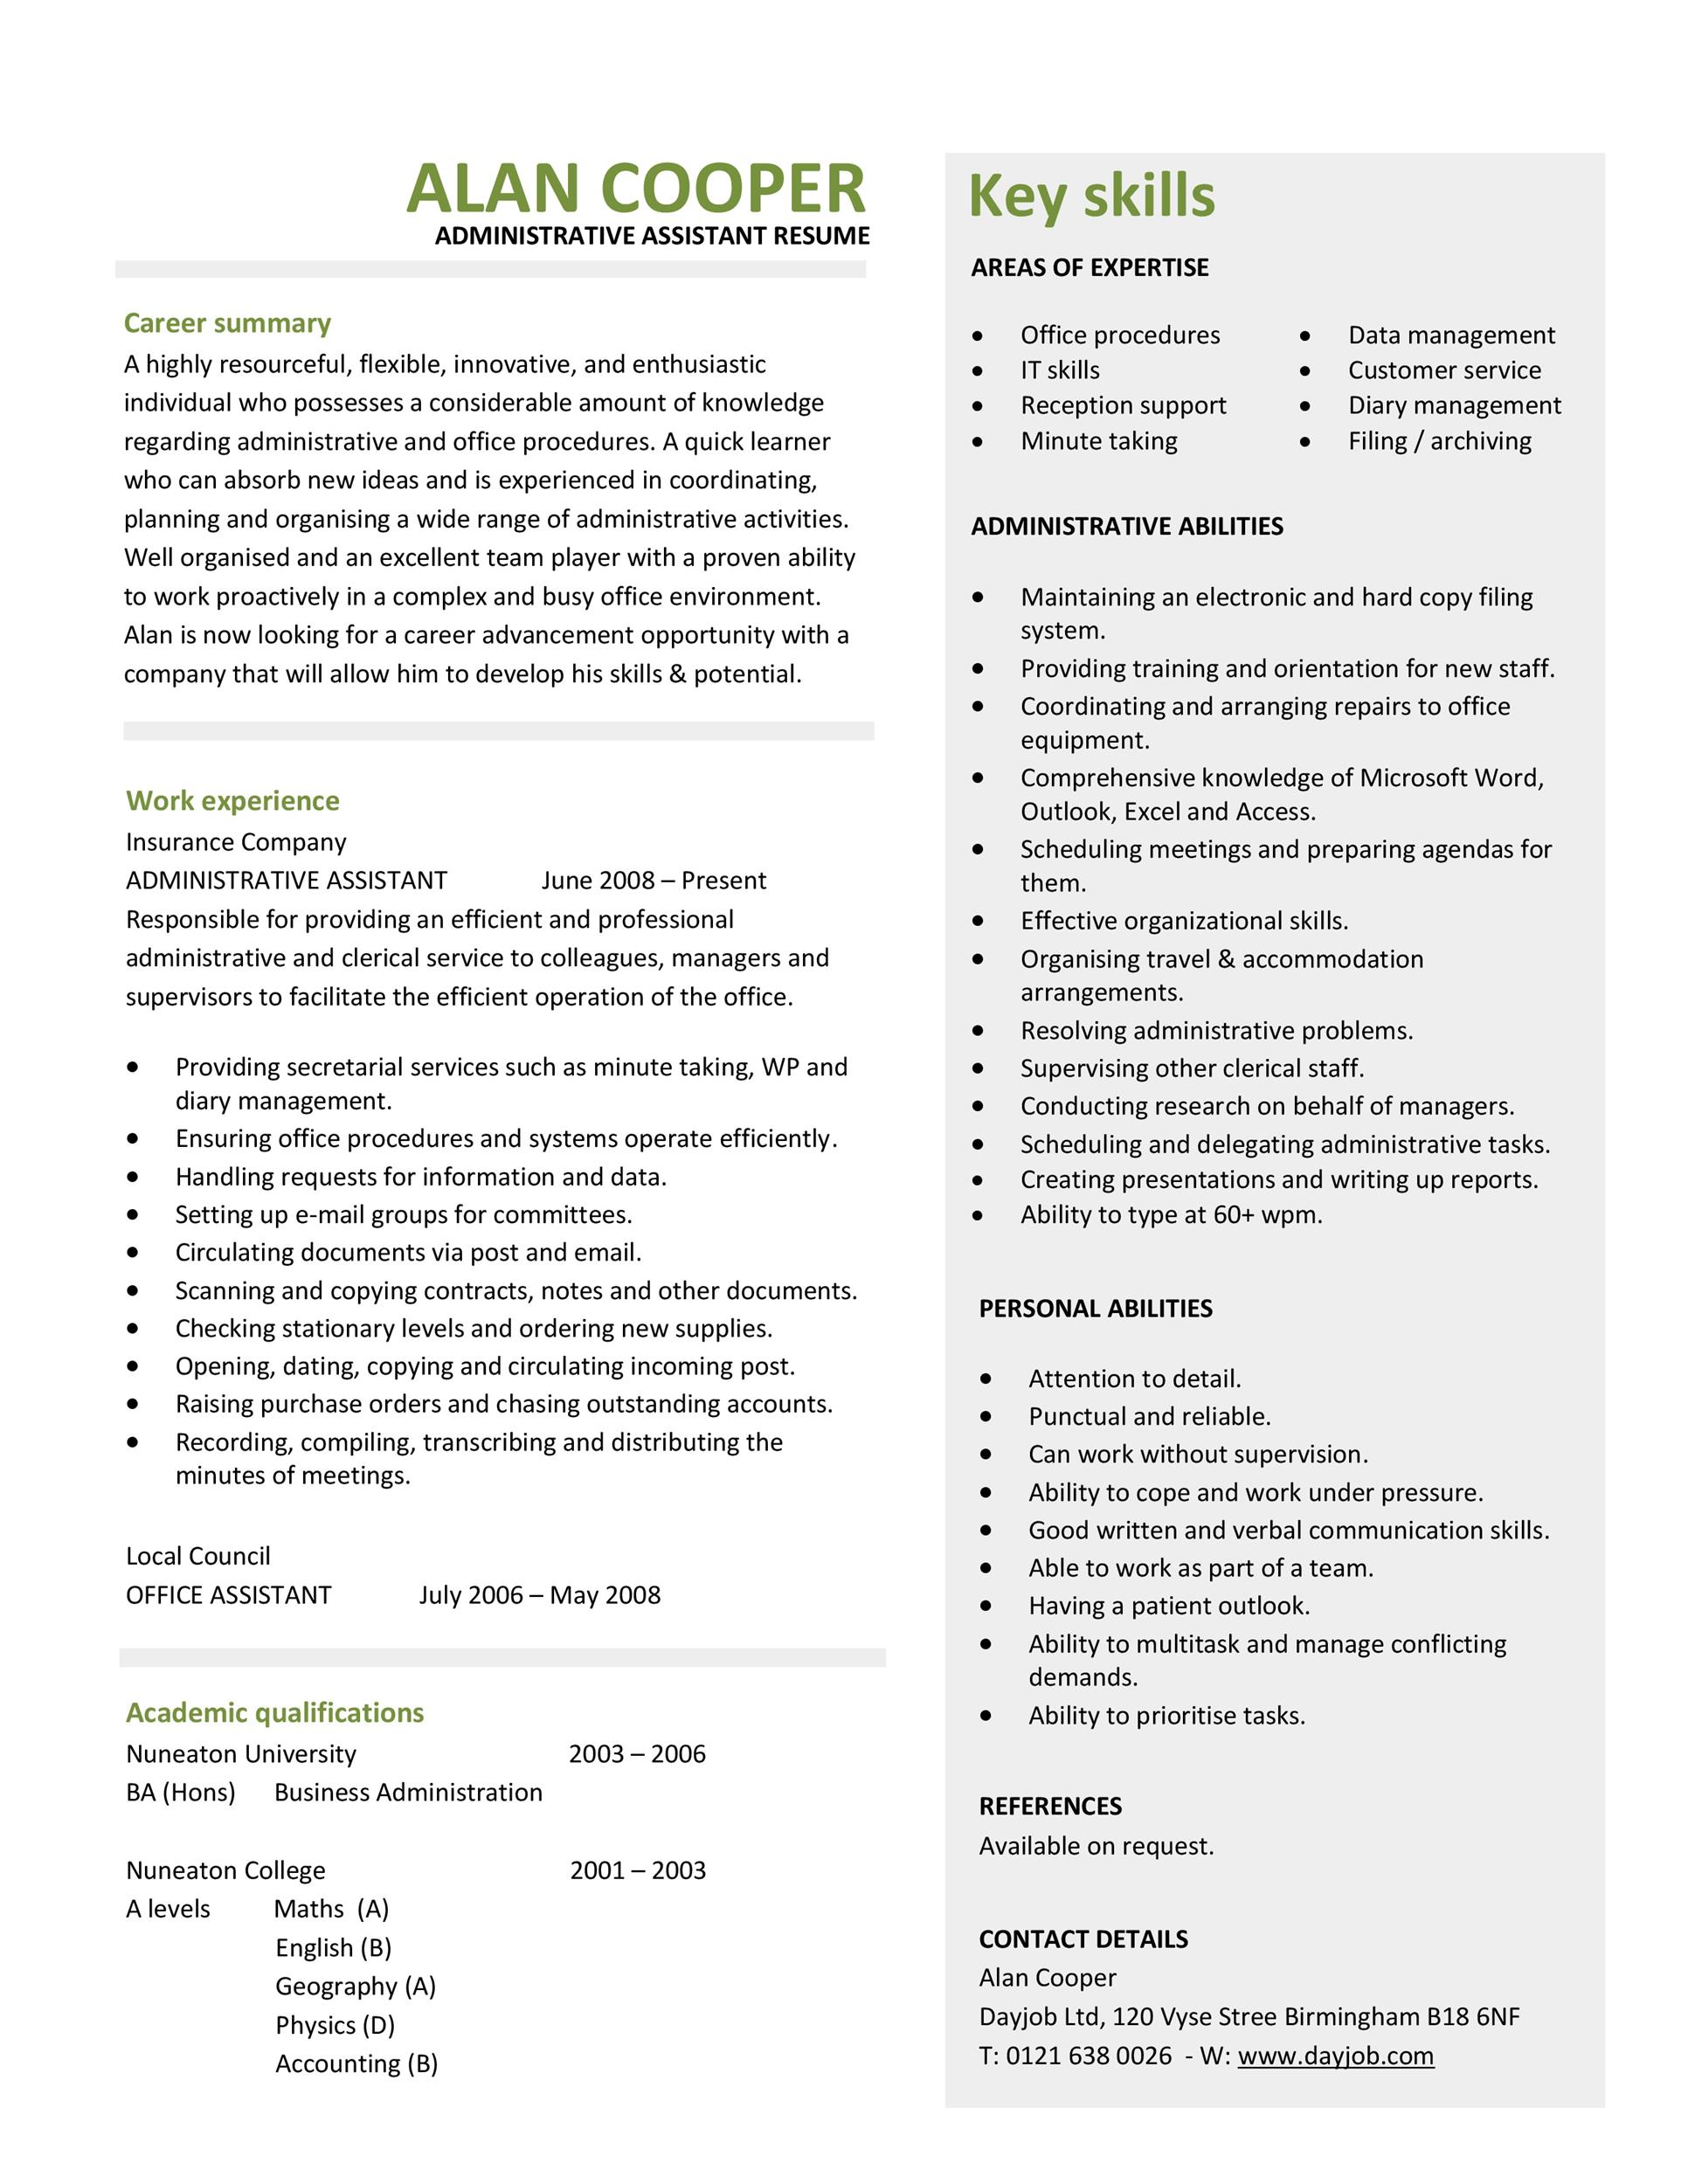 Office Administrative Assistant Resume Sample: 20+ Free Administrative Assistant Resume Samples